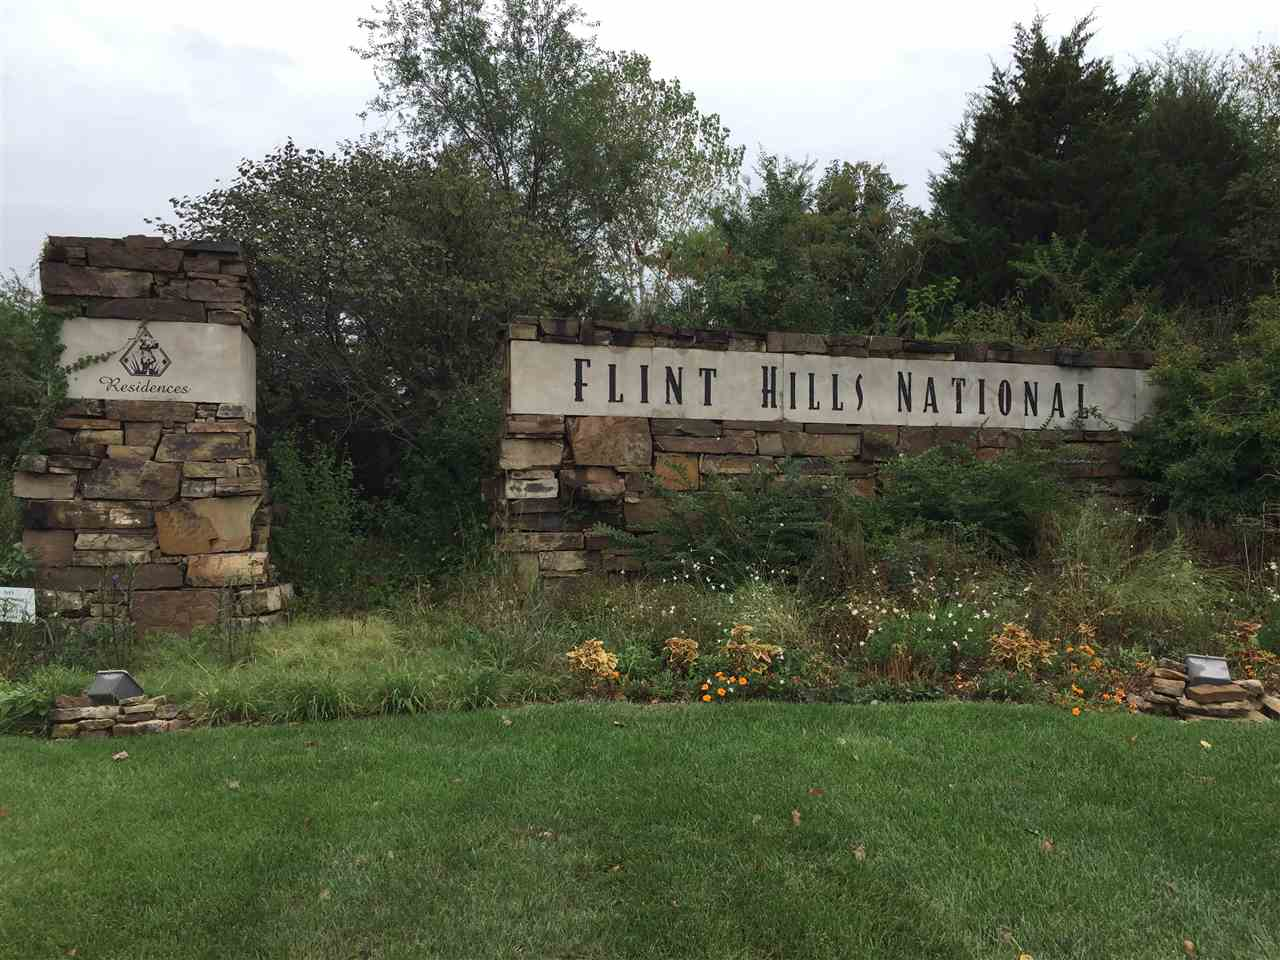 1.6 acre wooded home site in the prestigious Flint Hills National nationally ranked golf course community.  Spacious lot backing to commons area, plus wooded commons area across street.  Minimum main level square footage is 2,500 SF.  Great lot with great views and low specials!